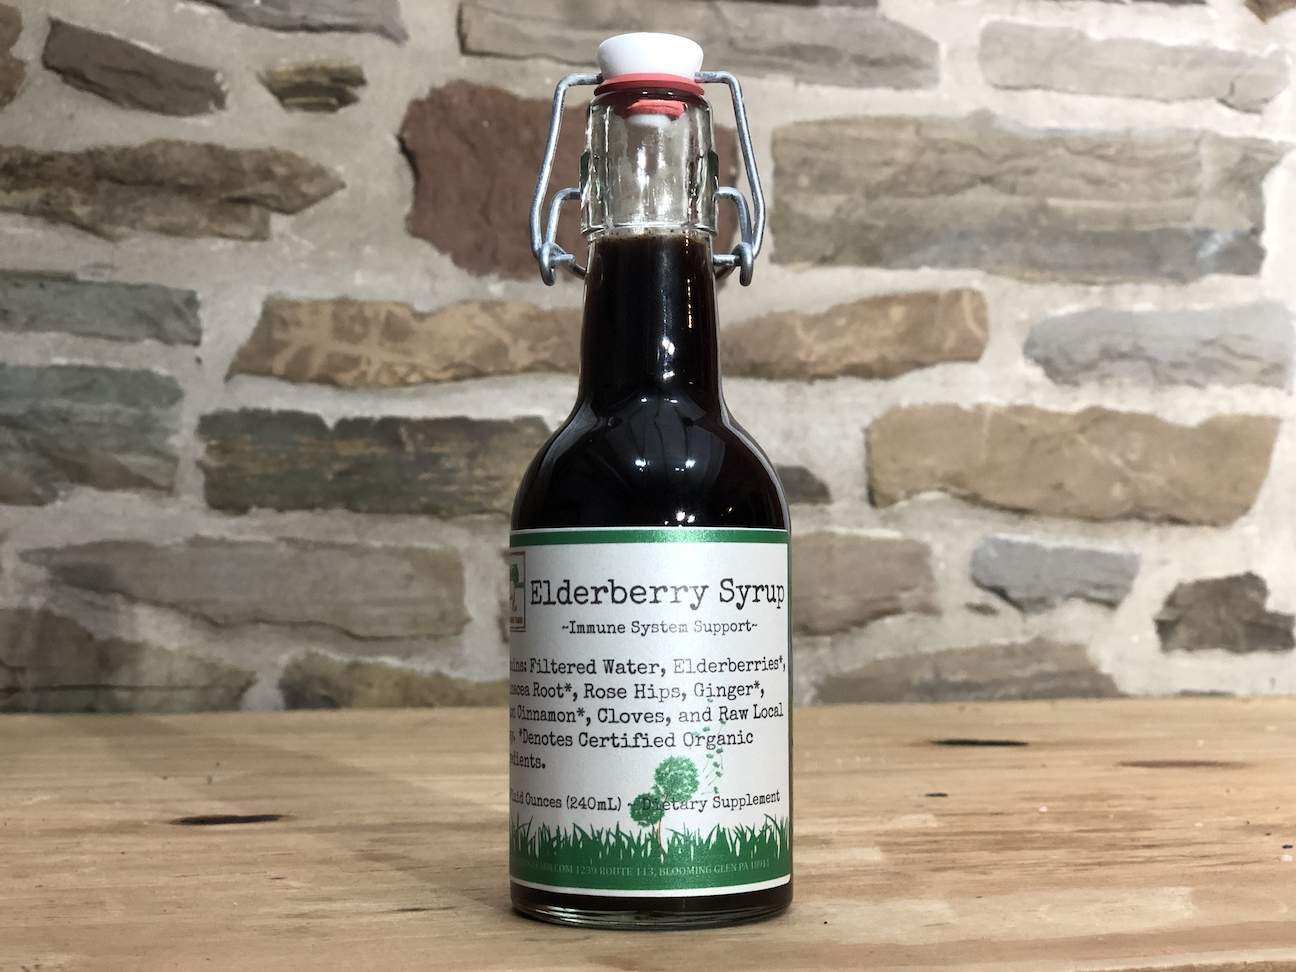 Elderberry Syrup, Sauces, Dry Rub, and More!